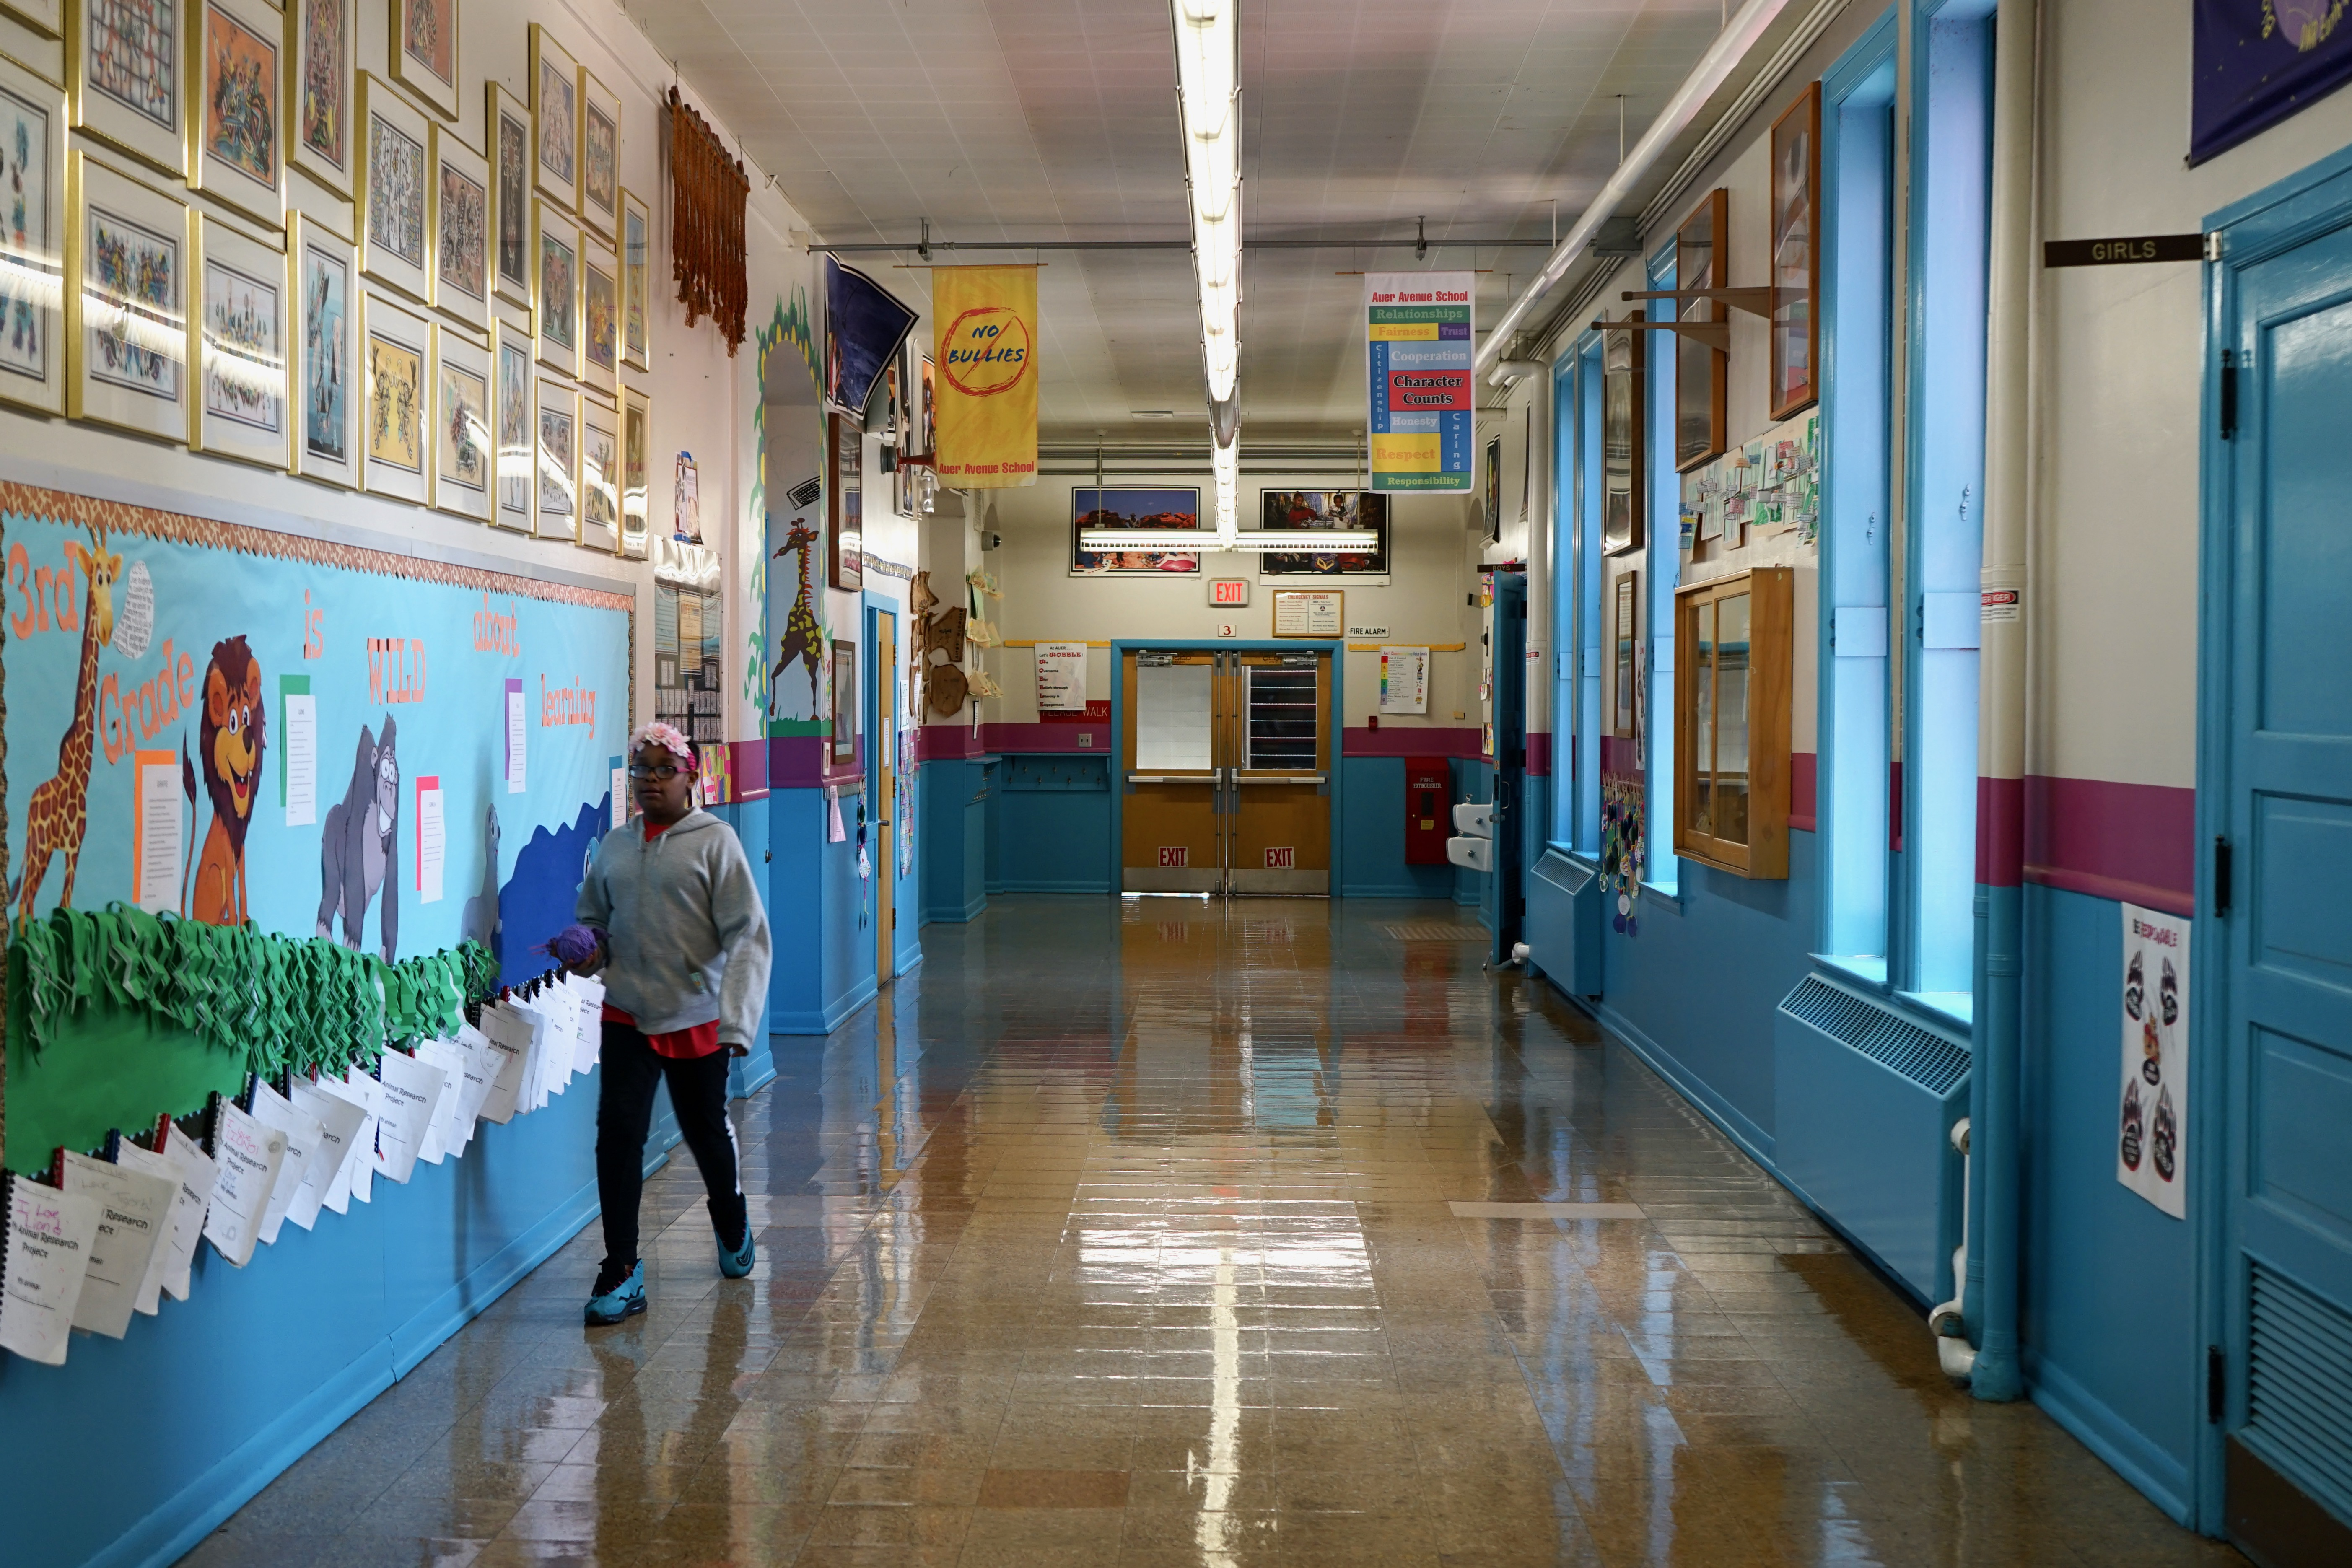 The hallways may be empty, but teachers across the city are doing their best to keep their students engaged during the COVID-19 pandemic. File photo by Adam Carr/NNS.